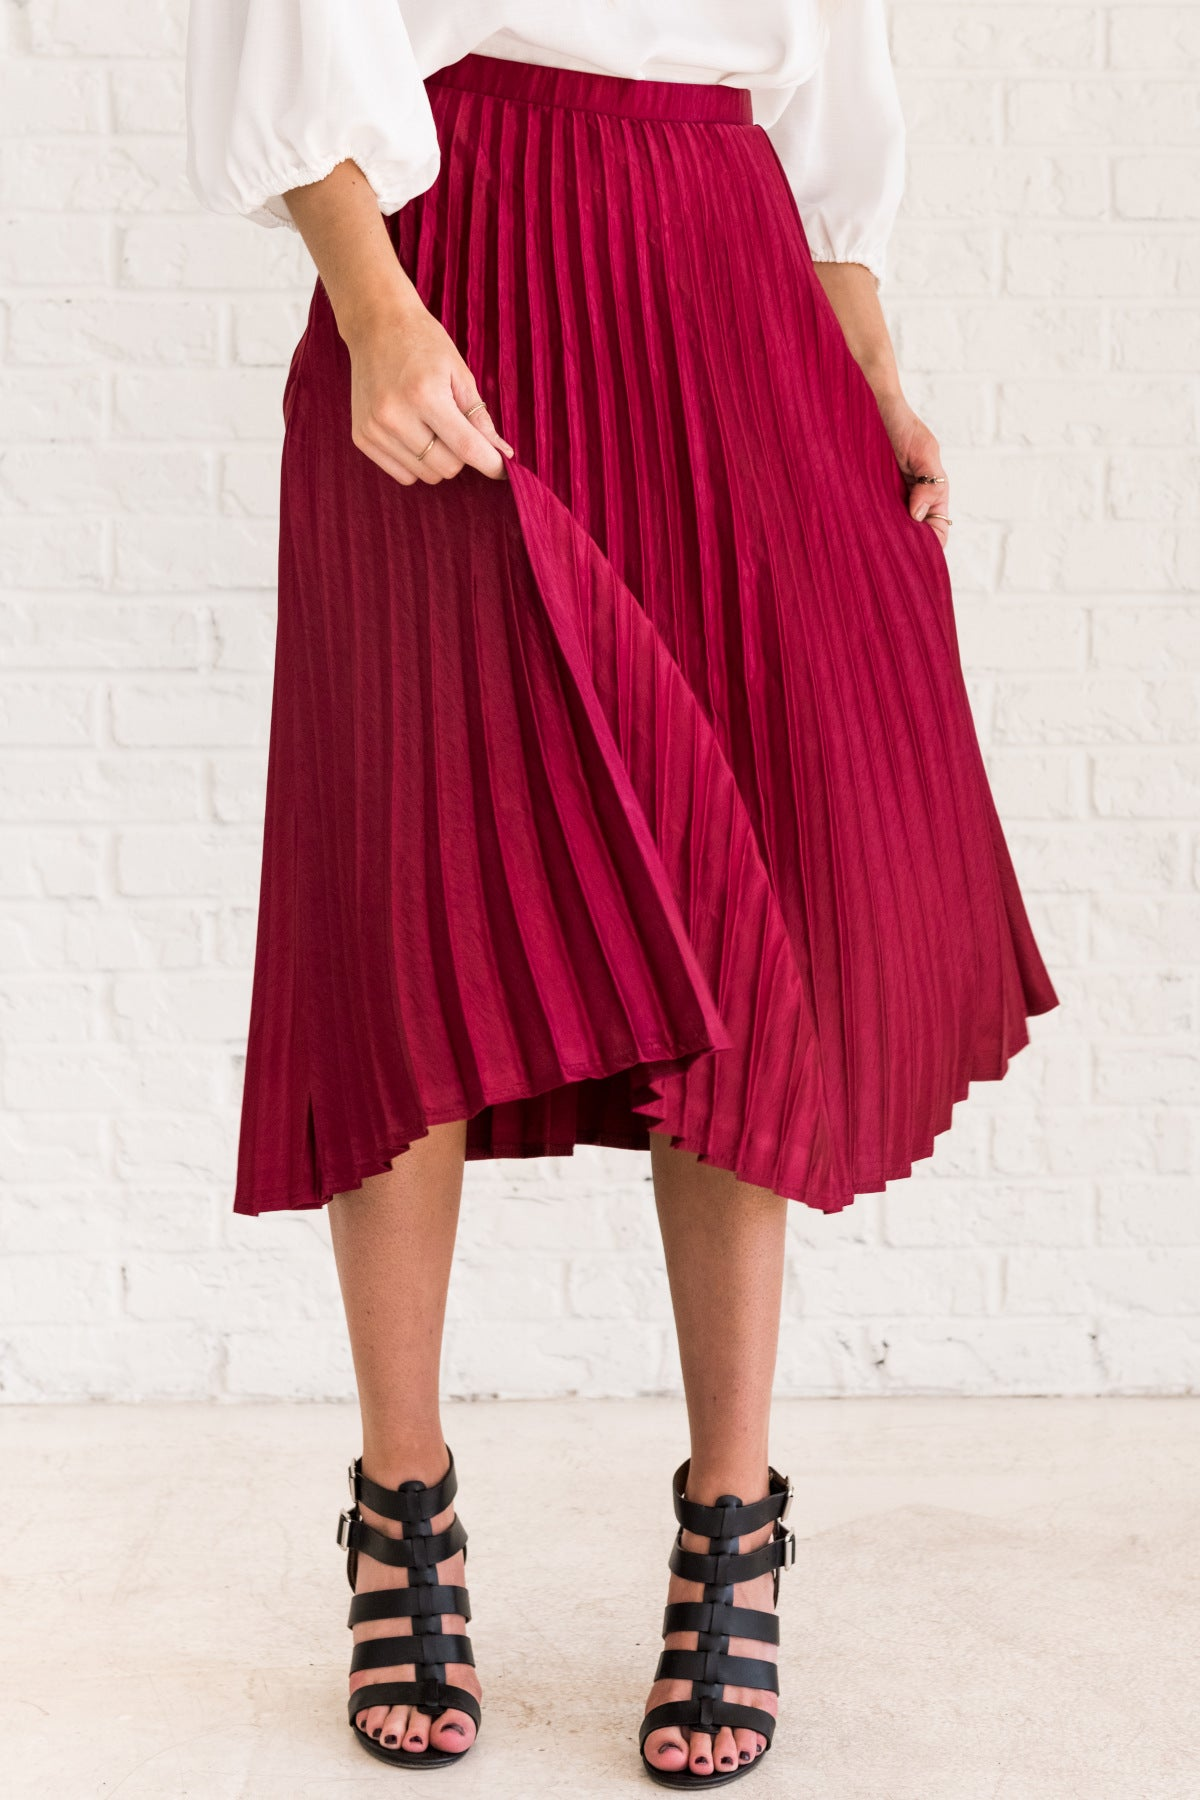 856a7ea460a Red Pleated Midi Skirt with Soft Silky Material and Hidden Zipper